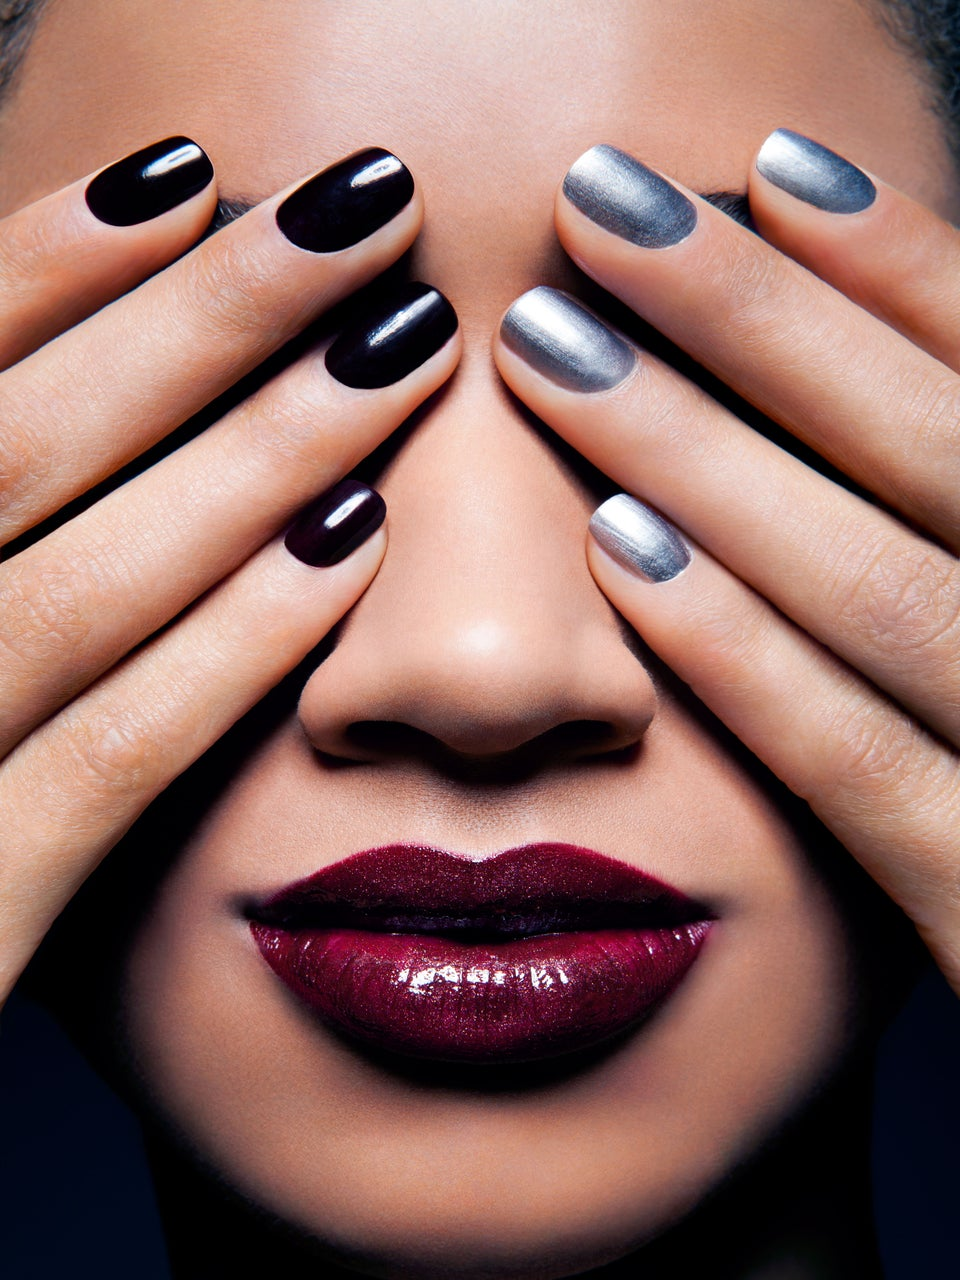 Everything You Need For A Last Minute New Year's Eve Manicure